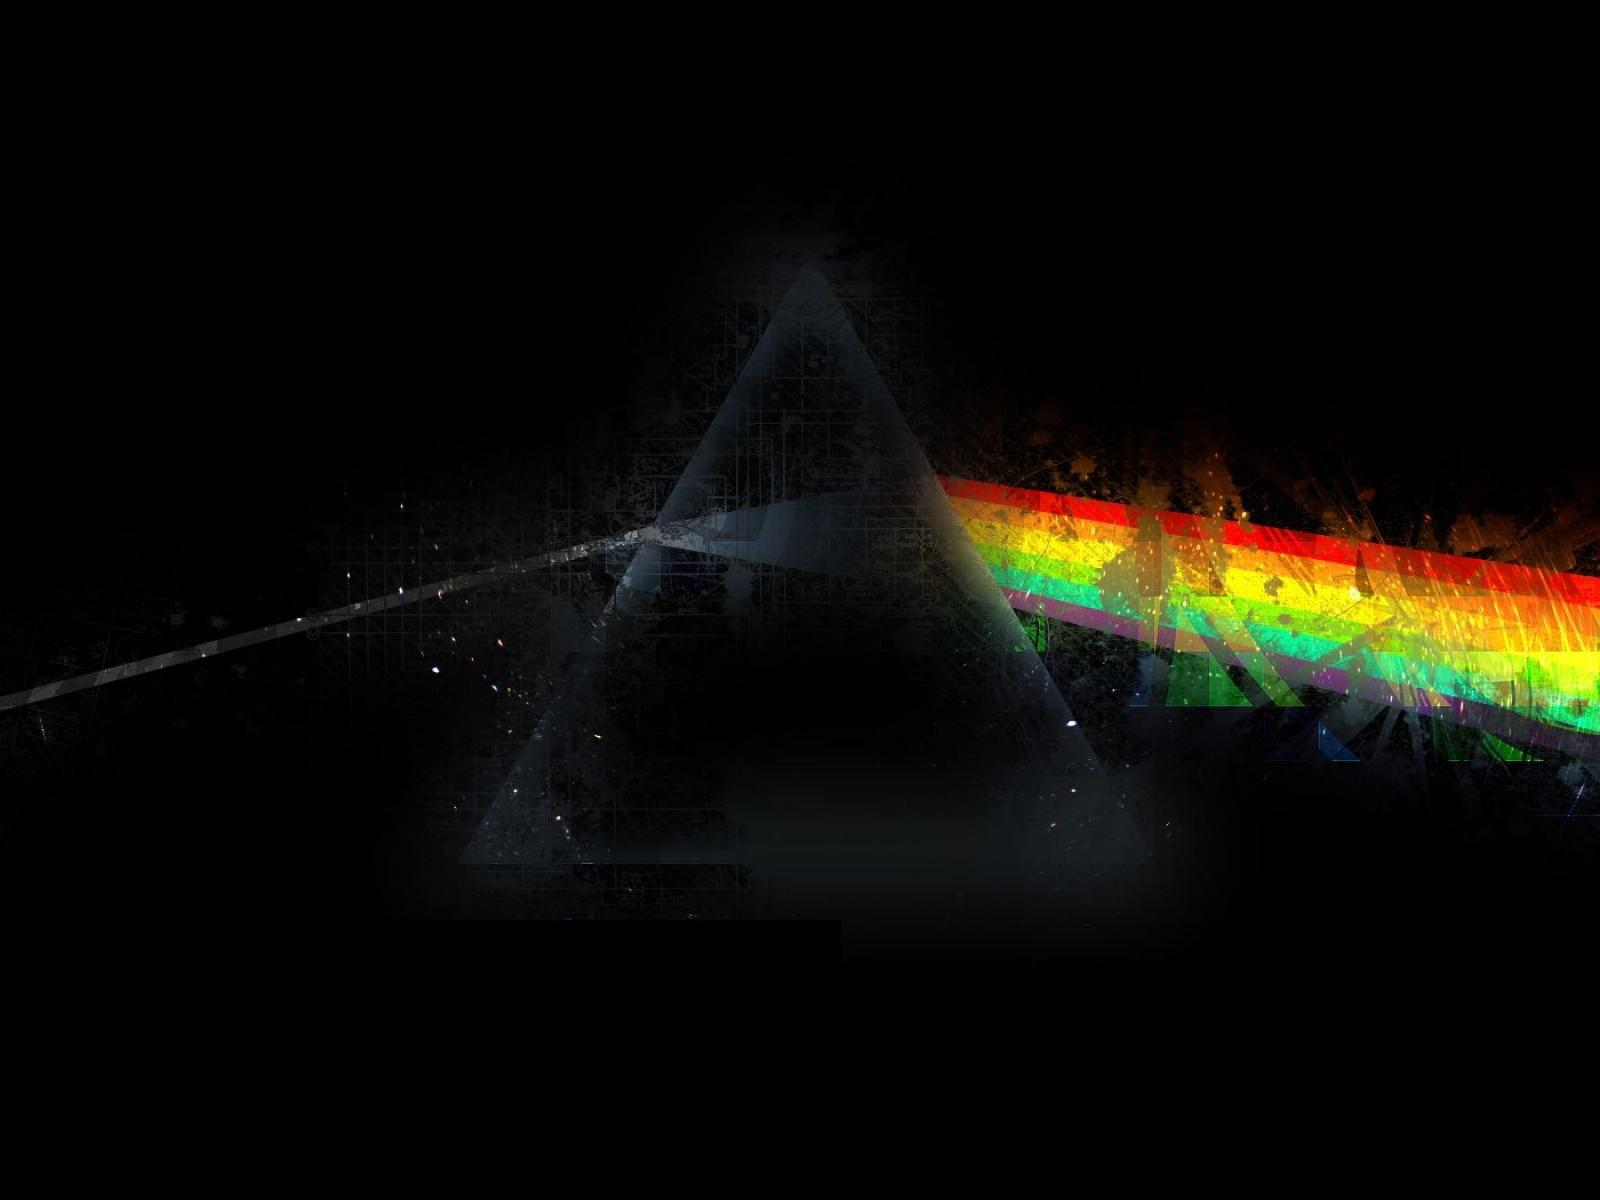 pink floyd dark side of the moon HD Wallpaper of Space & Planets 975